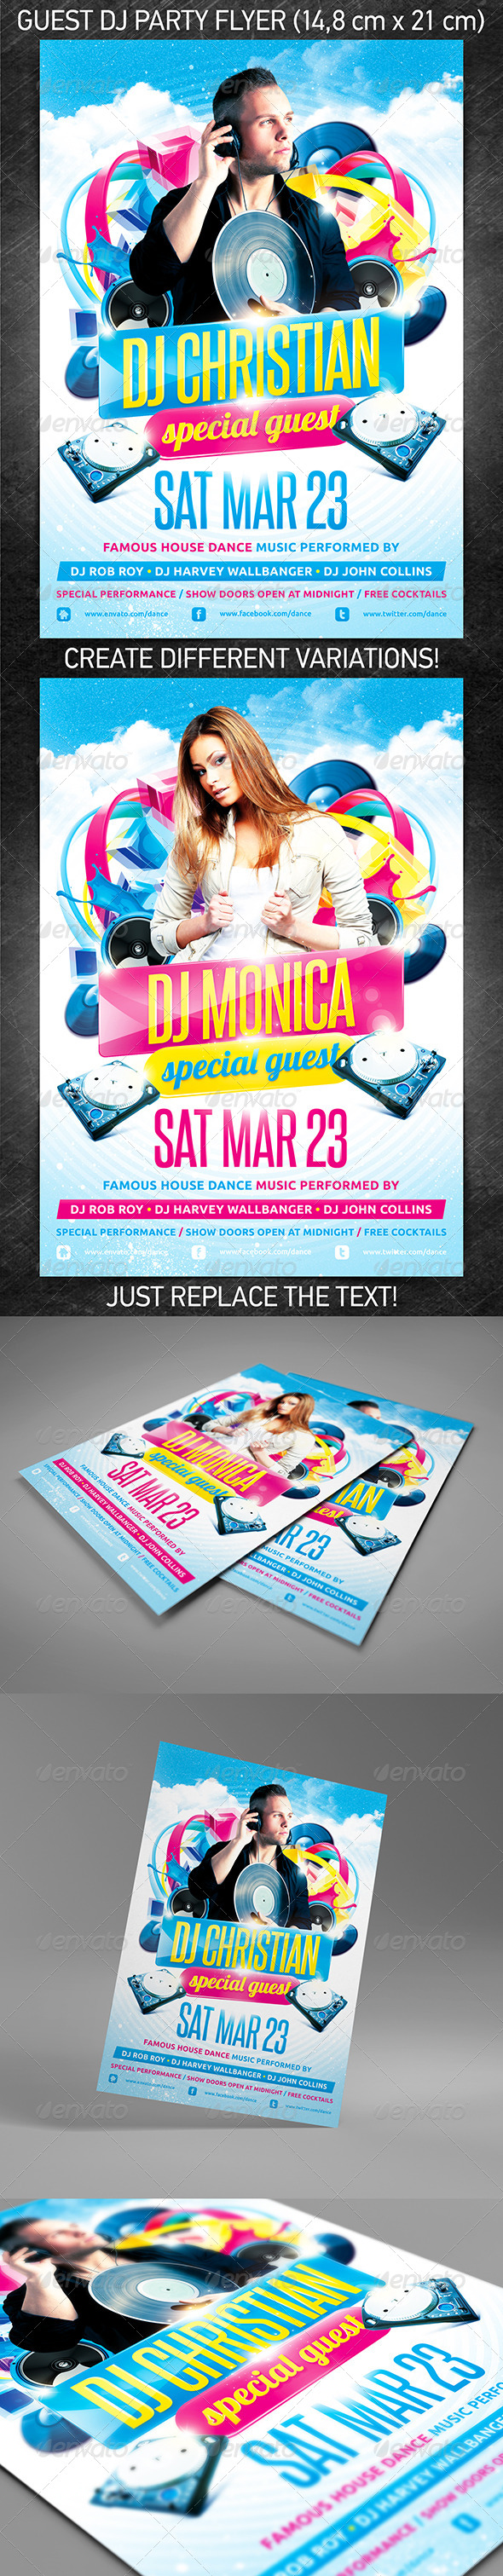 GraphicRiver Guest DJ party flyer 4207705